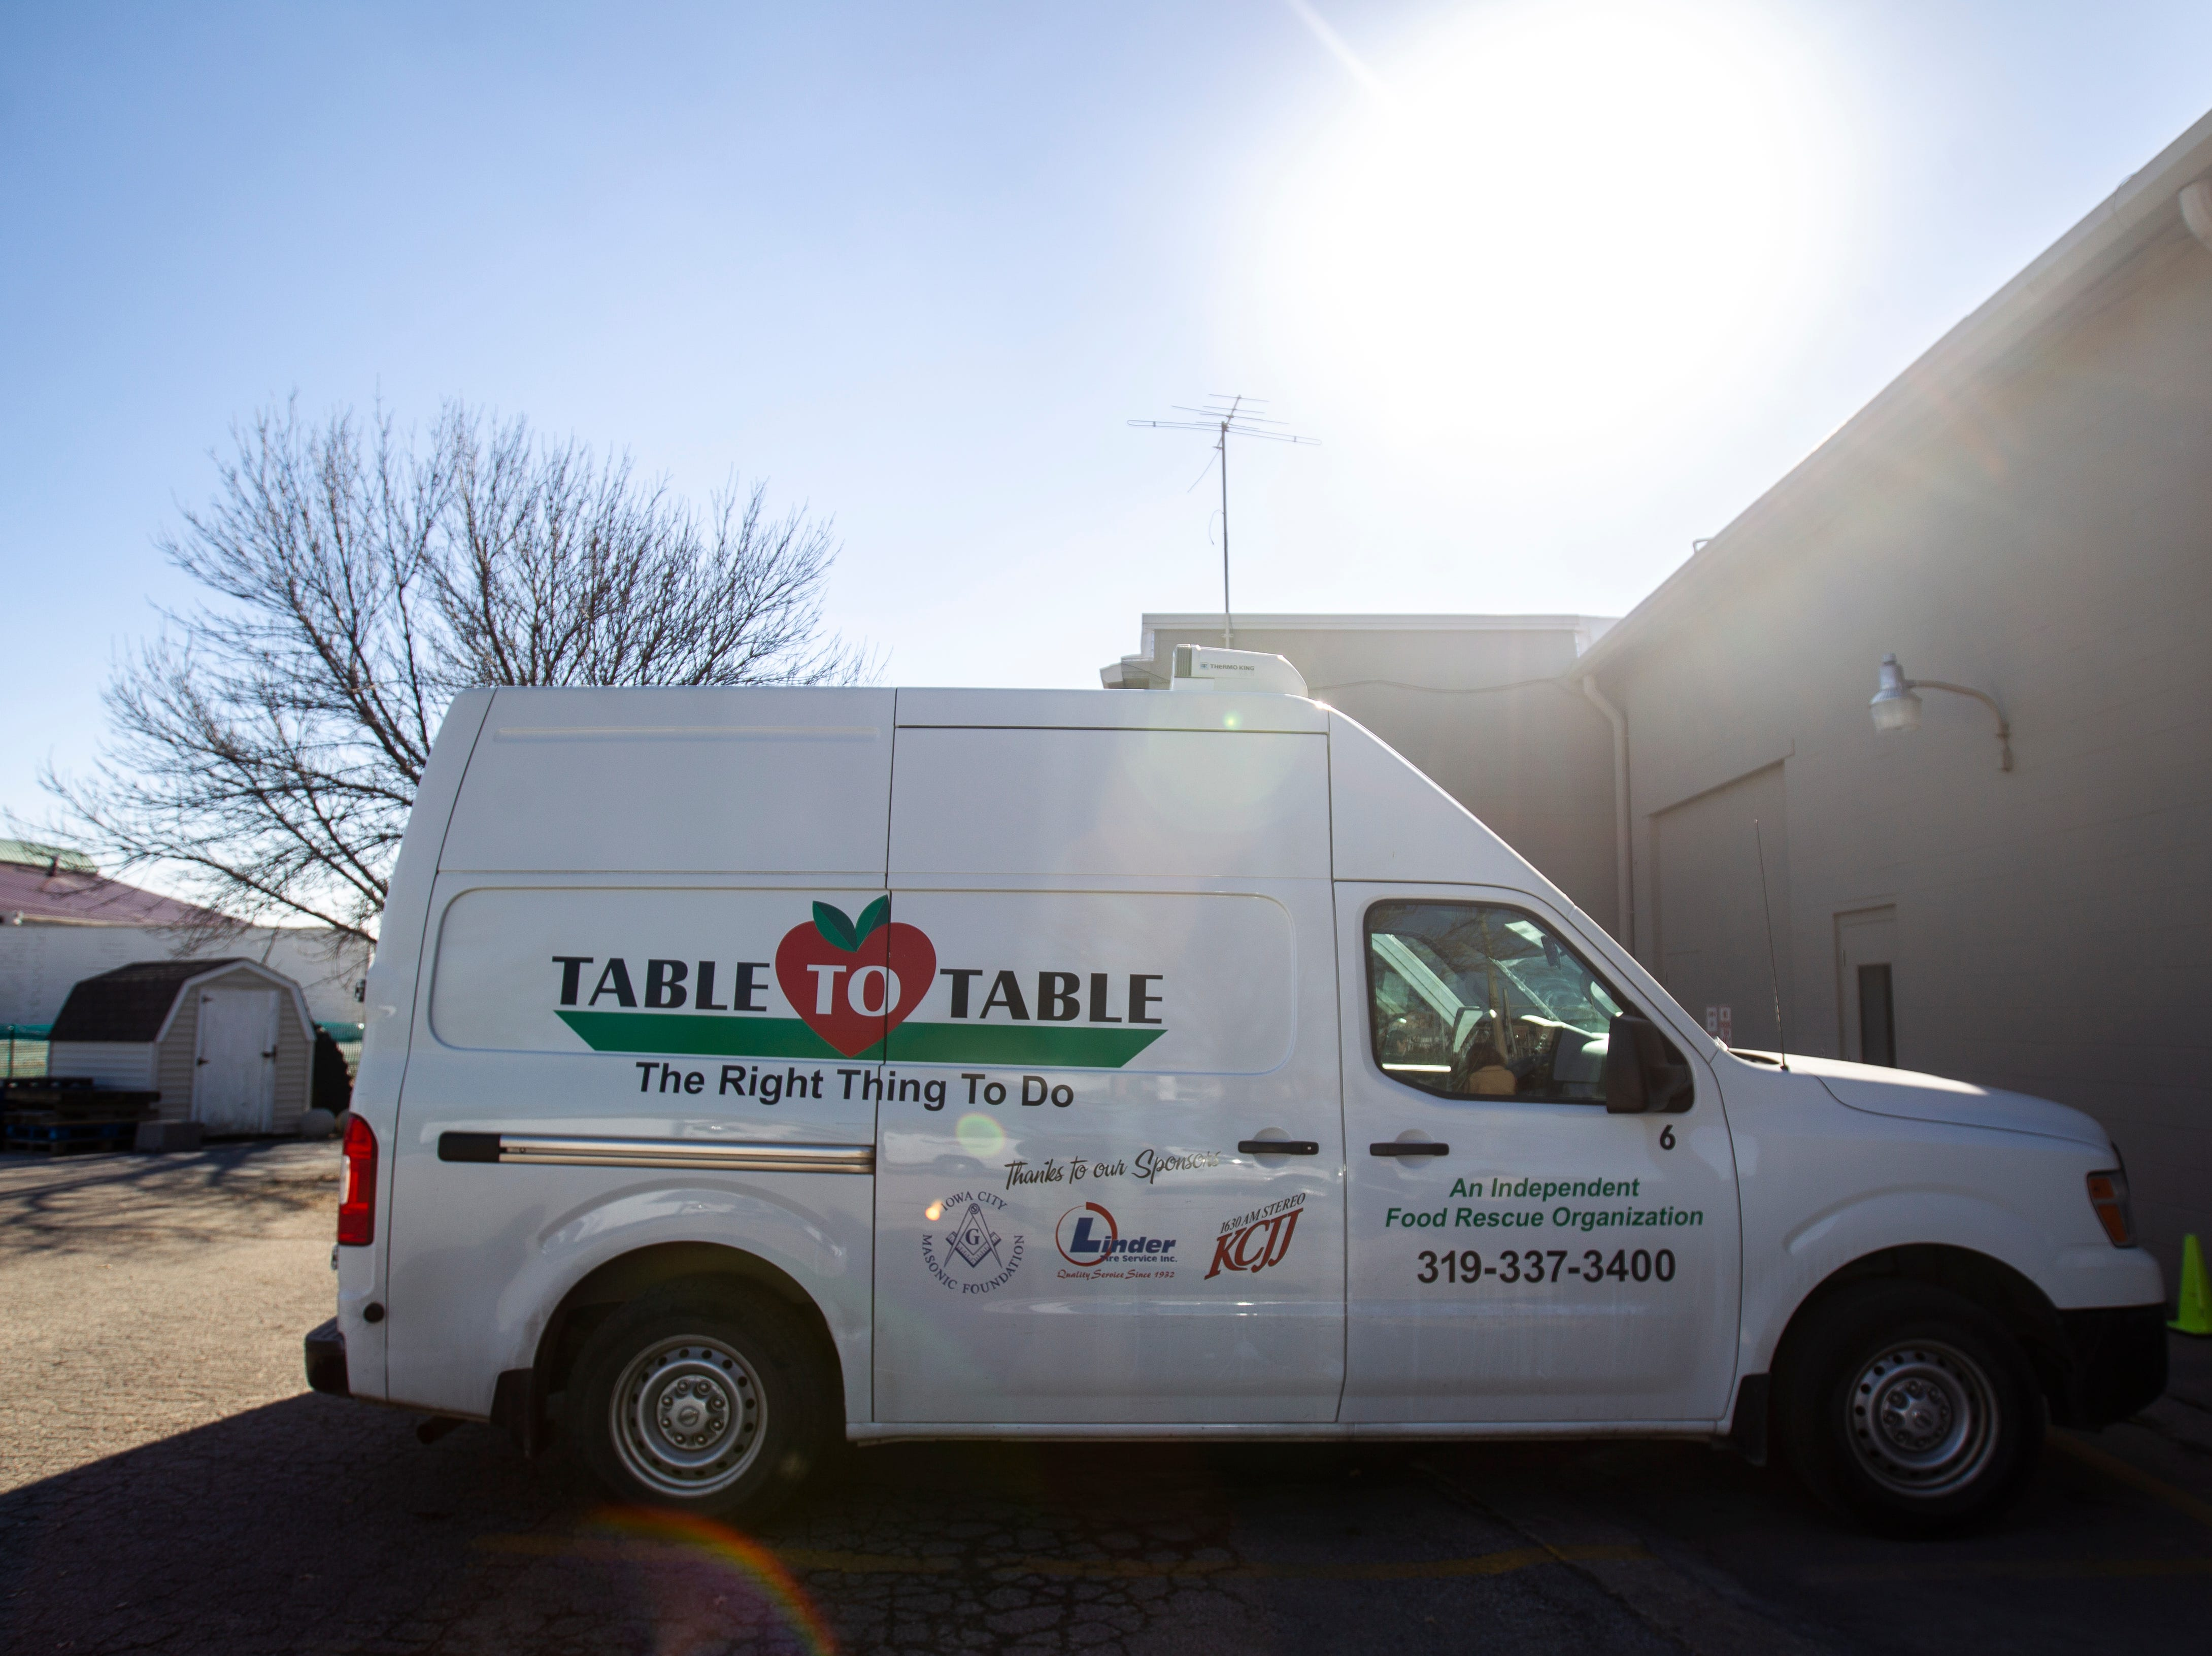 A Table to Table vehicle is seen on Thursday, Nov. 15, 2018, at the Table to Table offices in Iowa City.